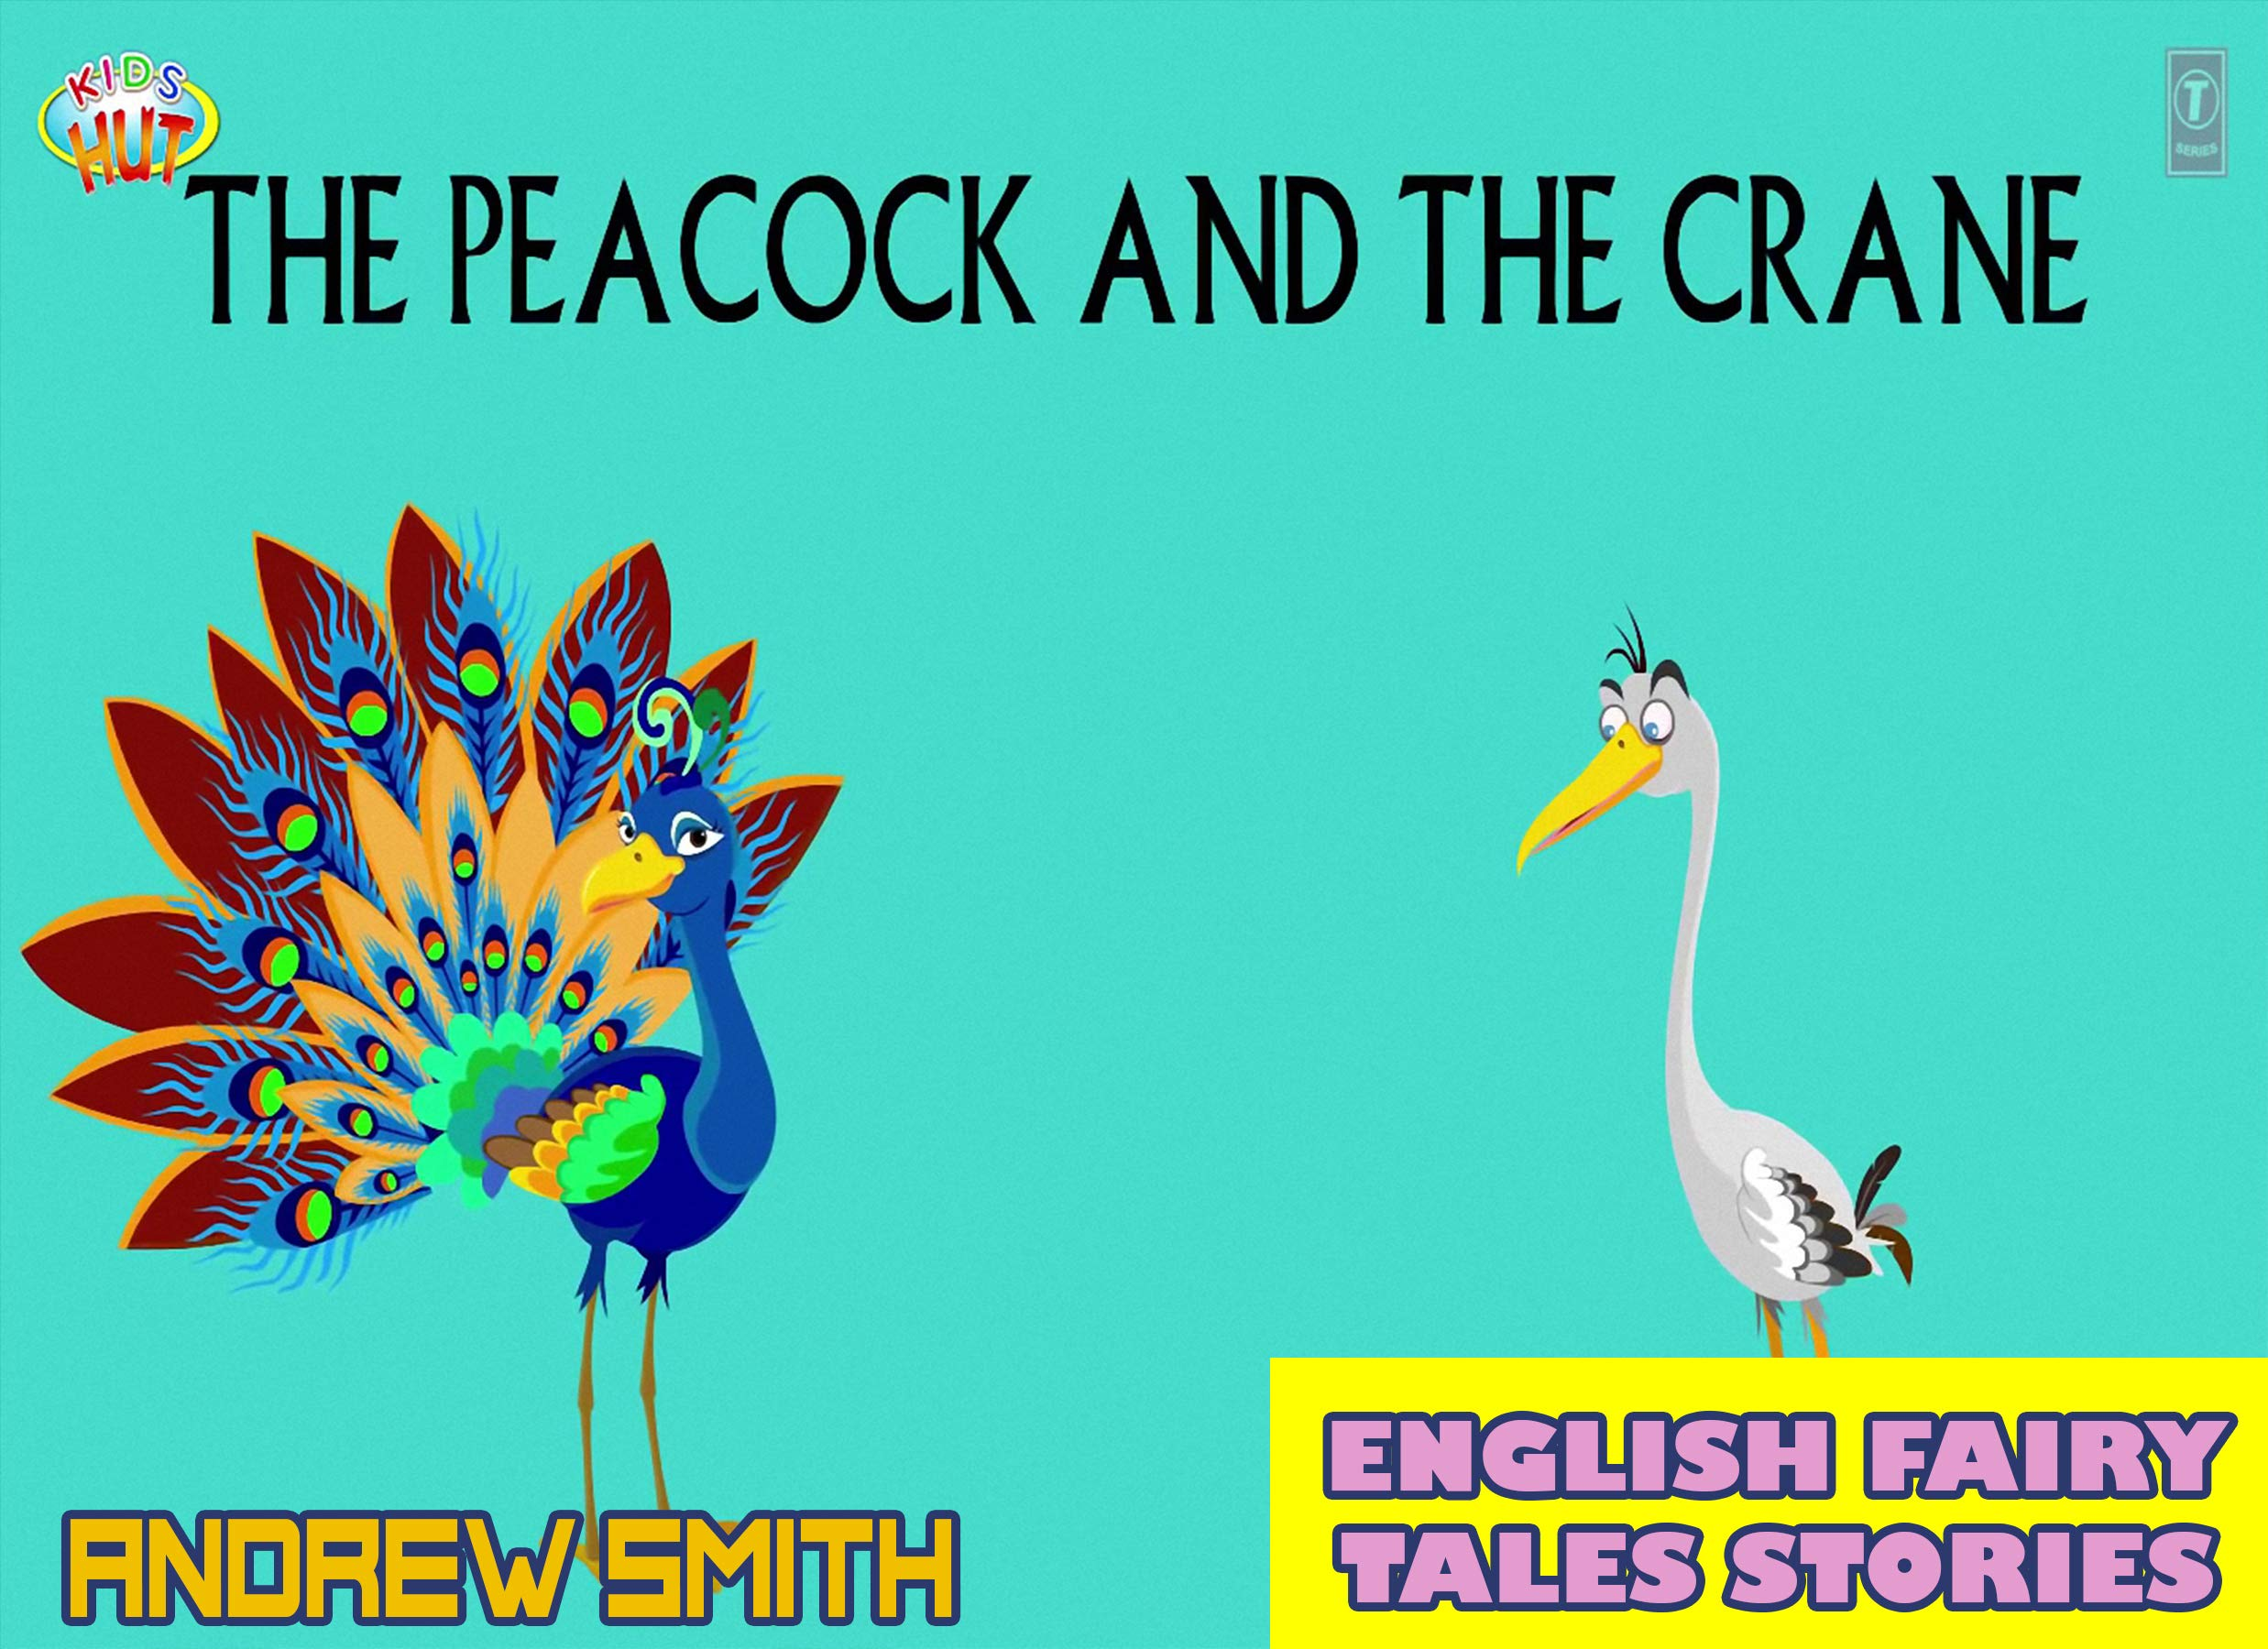 English Fairy Tales Stories: The Peacock And The Crane - Great 5-Minute Fairy Tale Picture Book For Kids, Boys, Girls, Children Of All Age